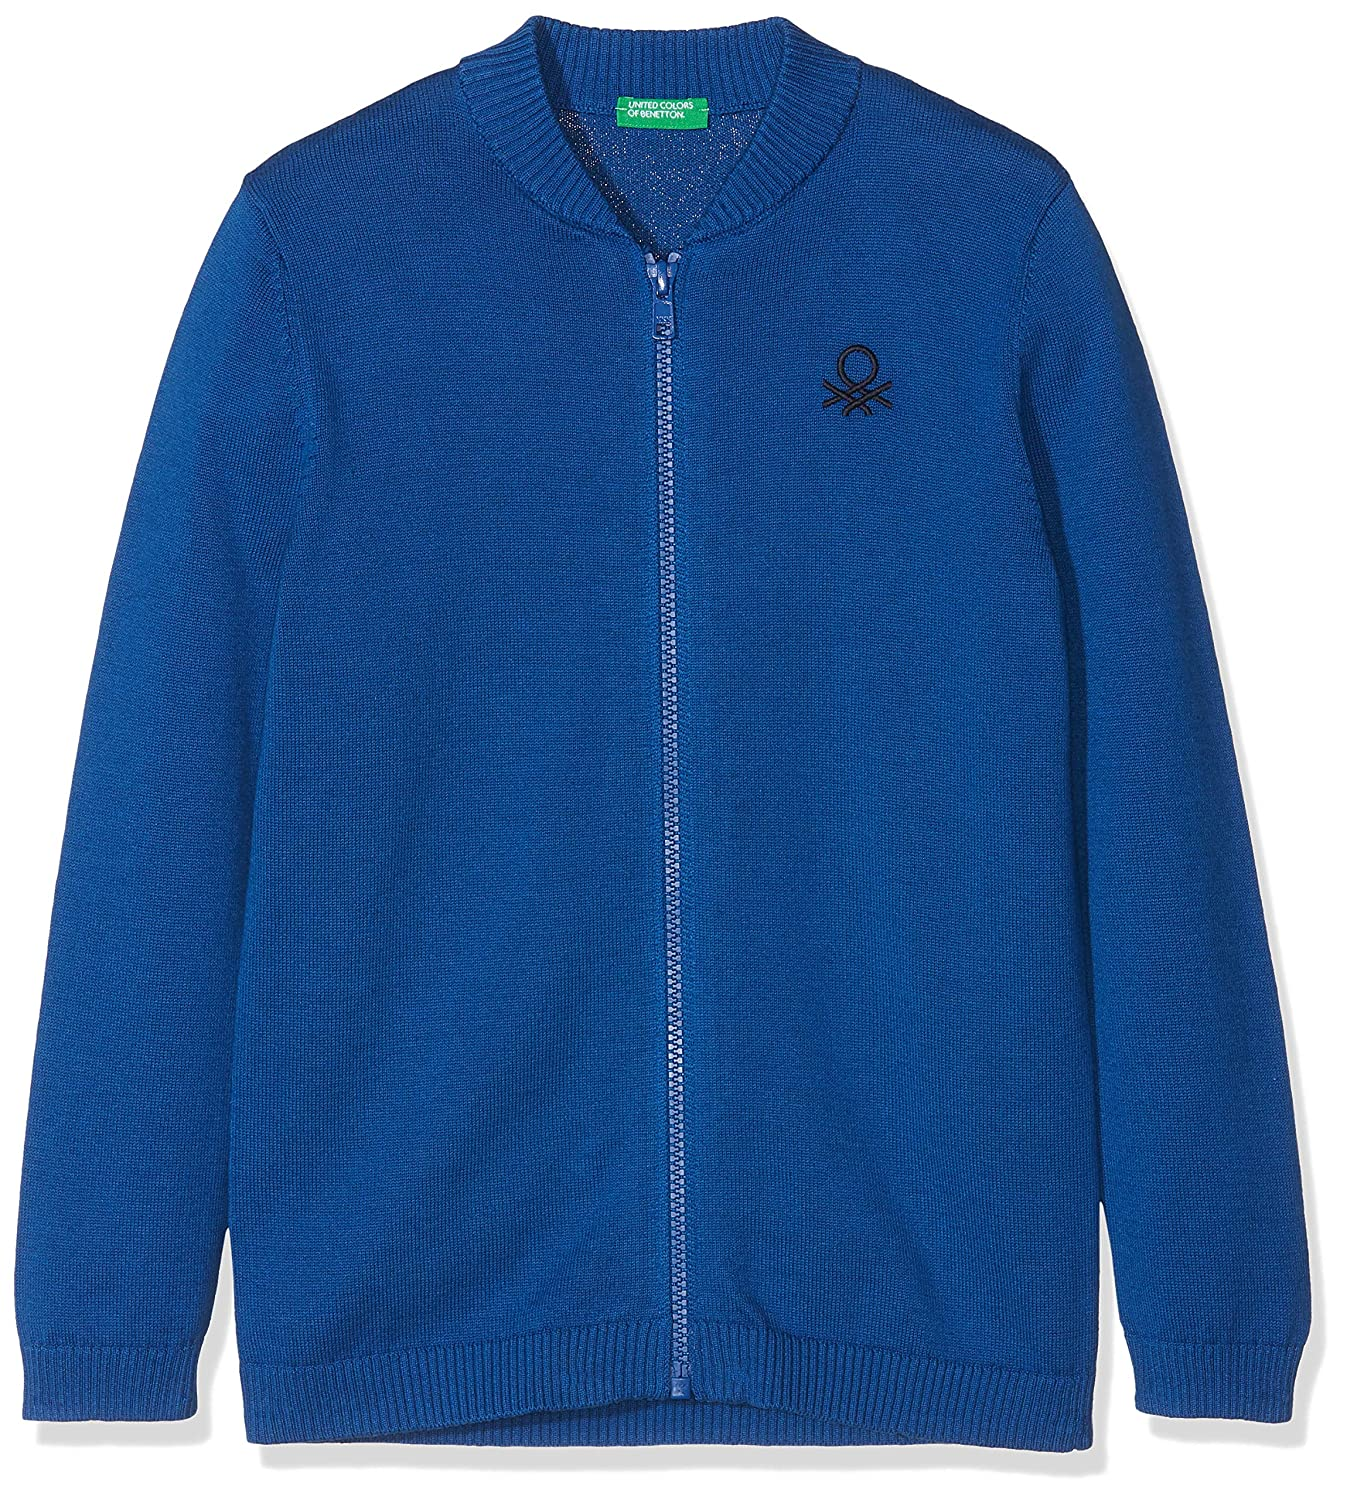 United Colors of Benetton Boys L//S Sweater Jumper